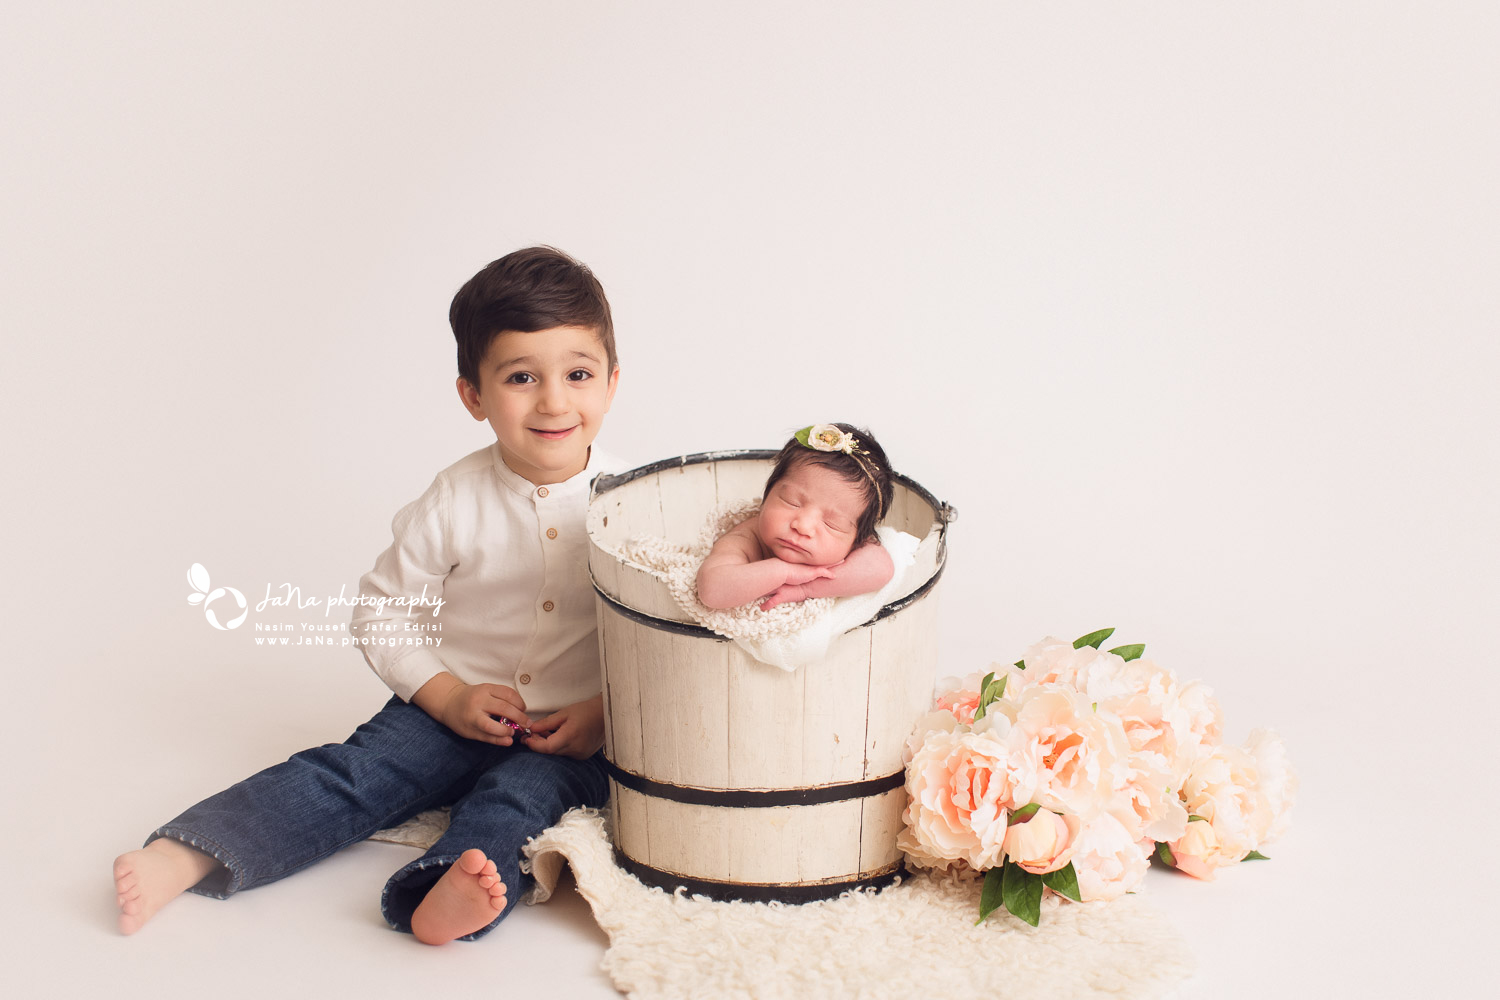 newborn photography - sibling - brother - jana